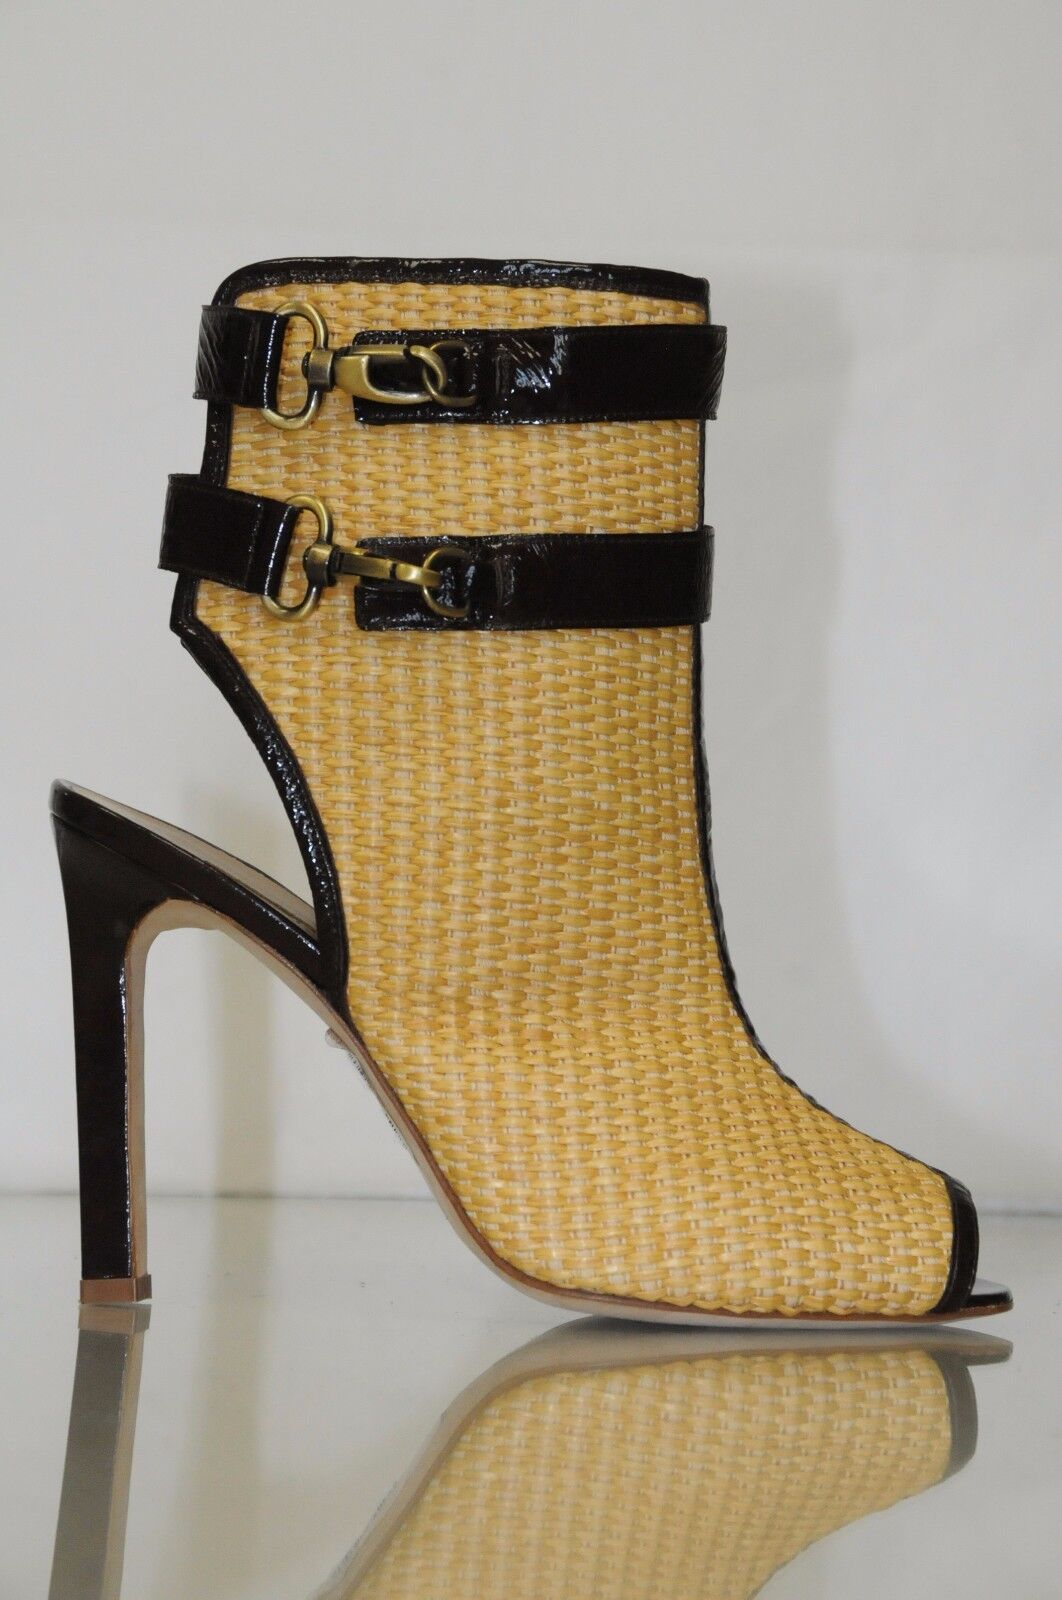 New MANOLO BLAHNIK Raffia Straw SANDALS BOOTIES Ankle BOOTS SHOES 38